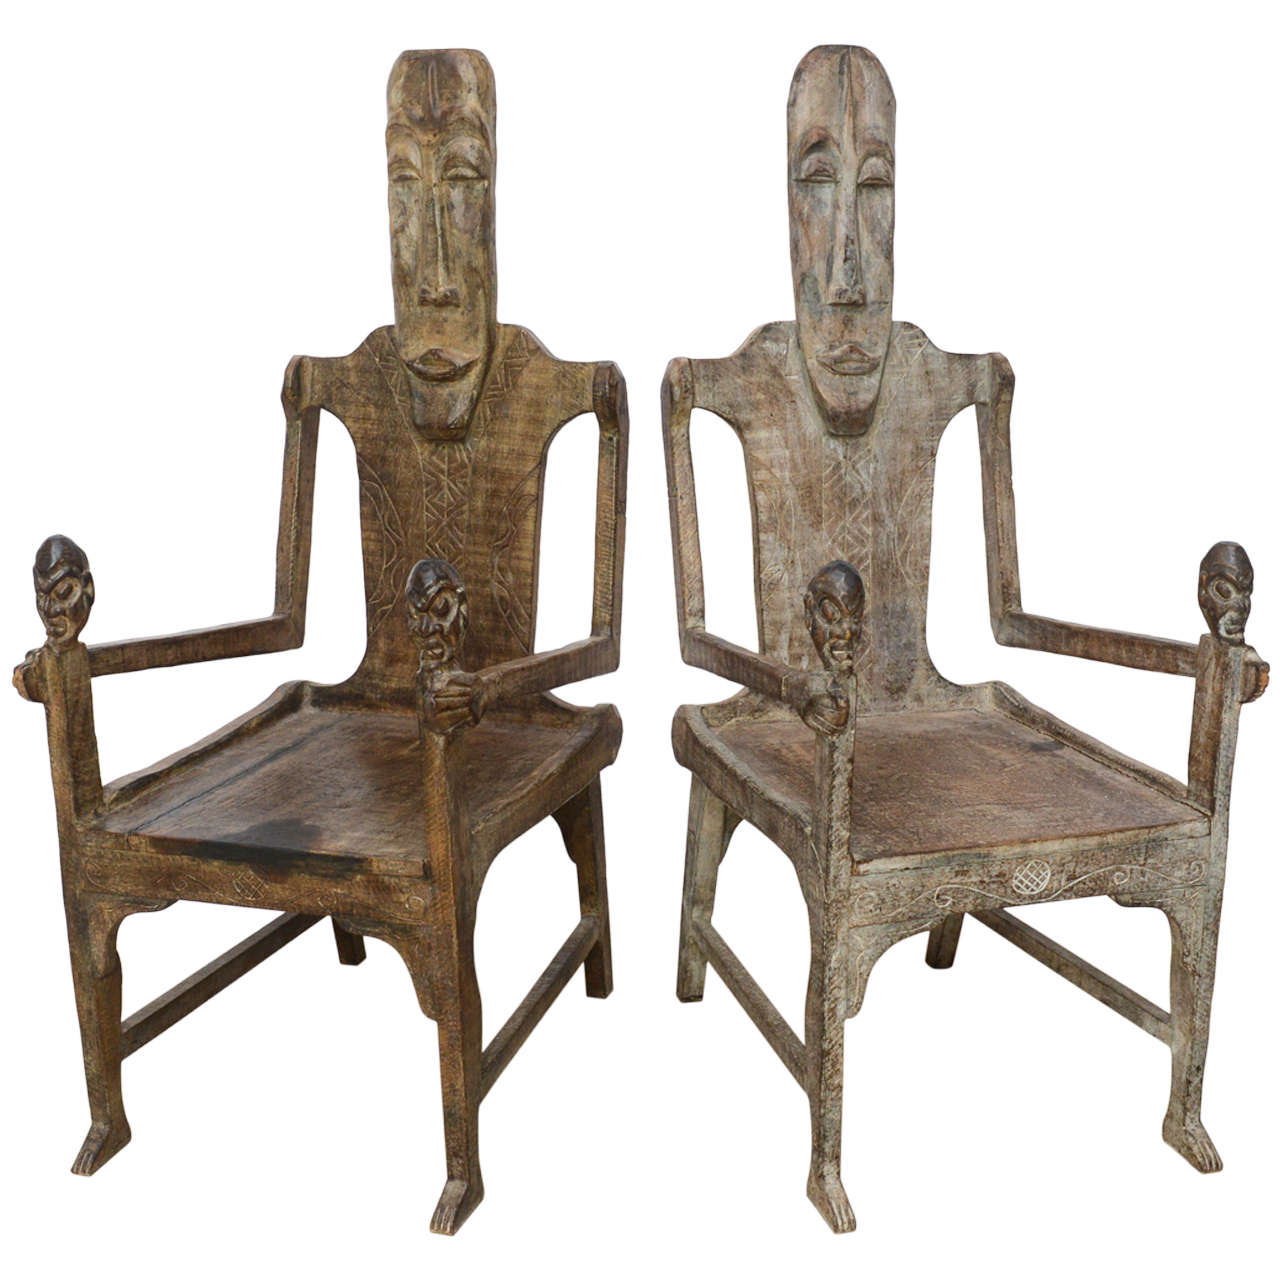 Pair of Large African Rootwood Armchairs, Late 19th-Early 20th Century